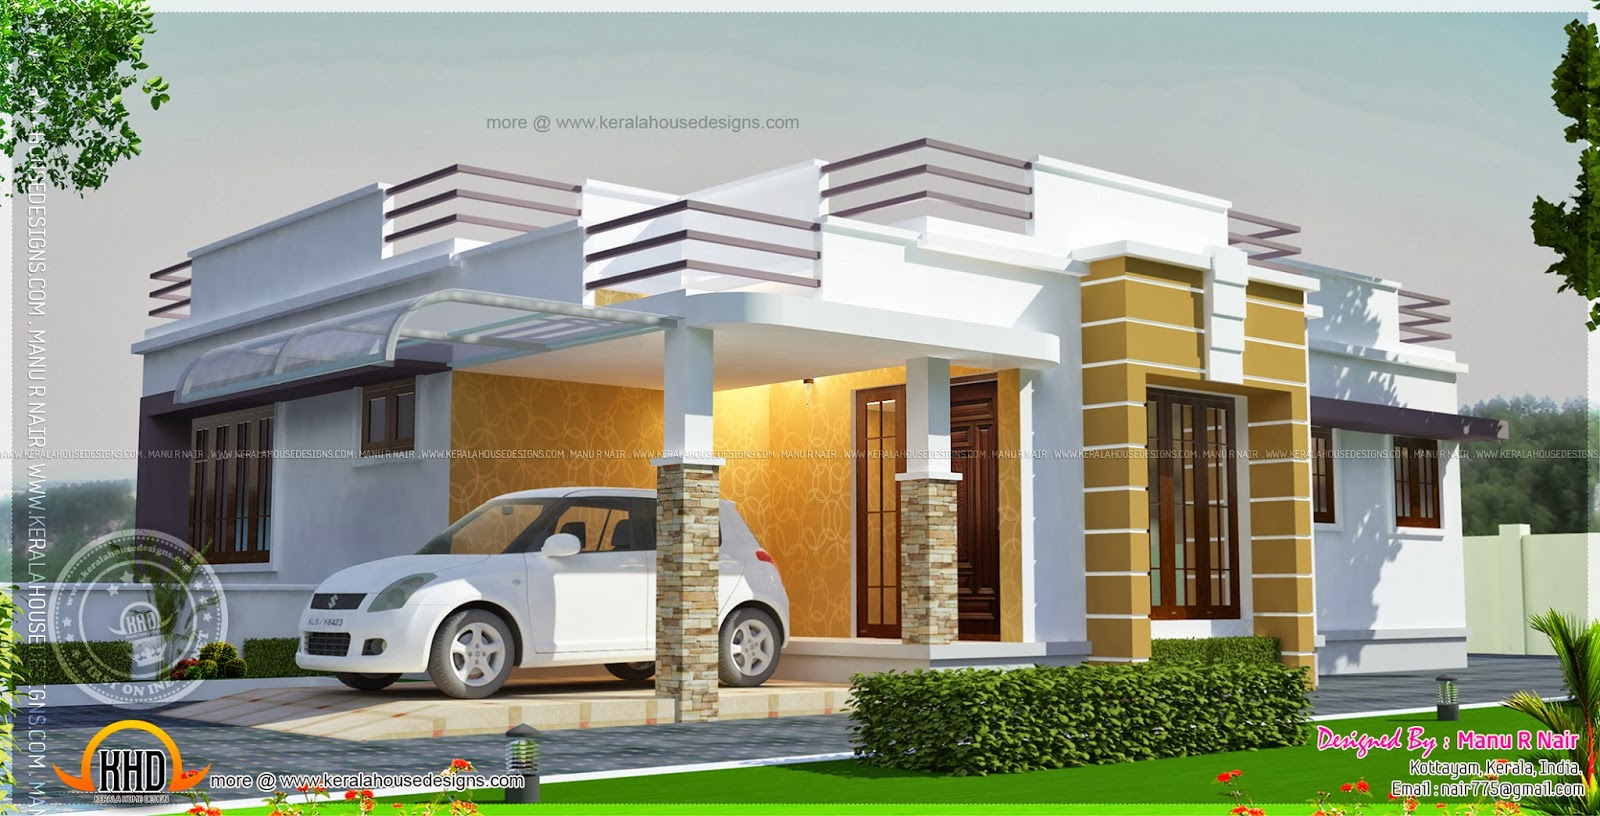 Front Elevation Parapet Wall : This proposed house is located at kottayam kerala home